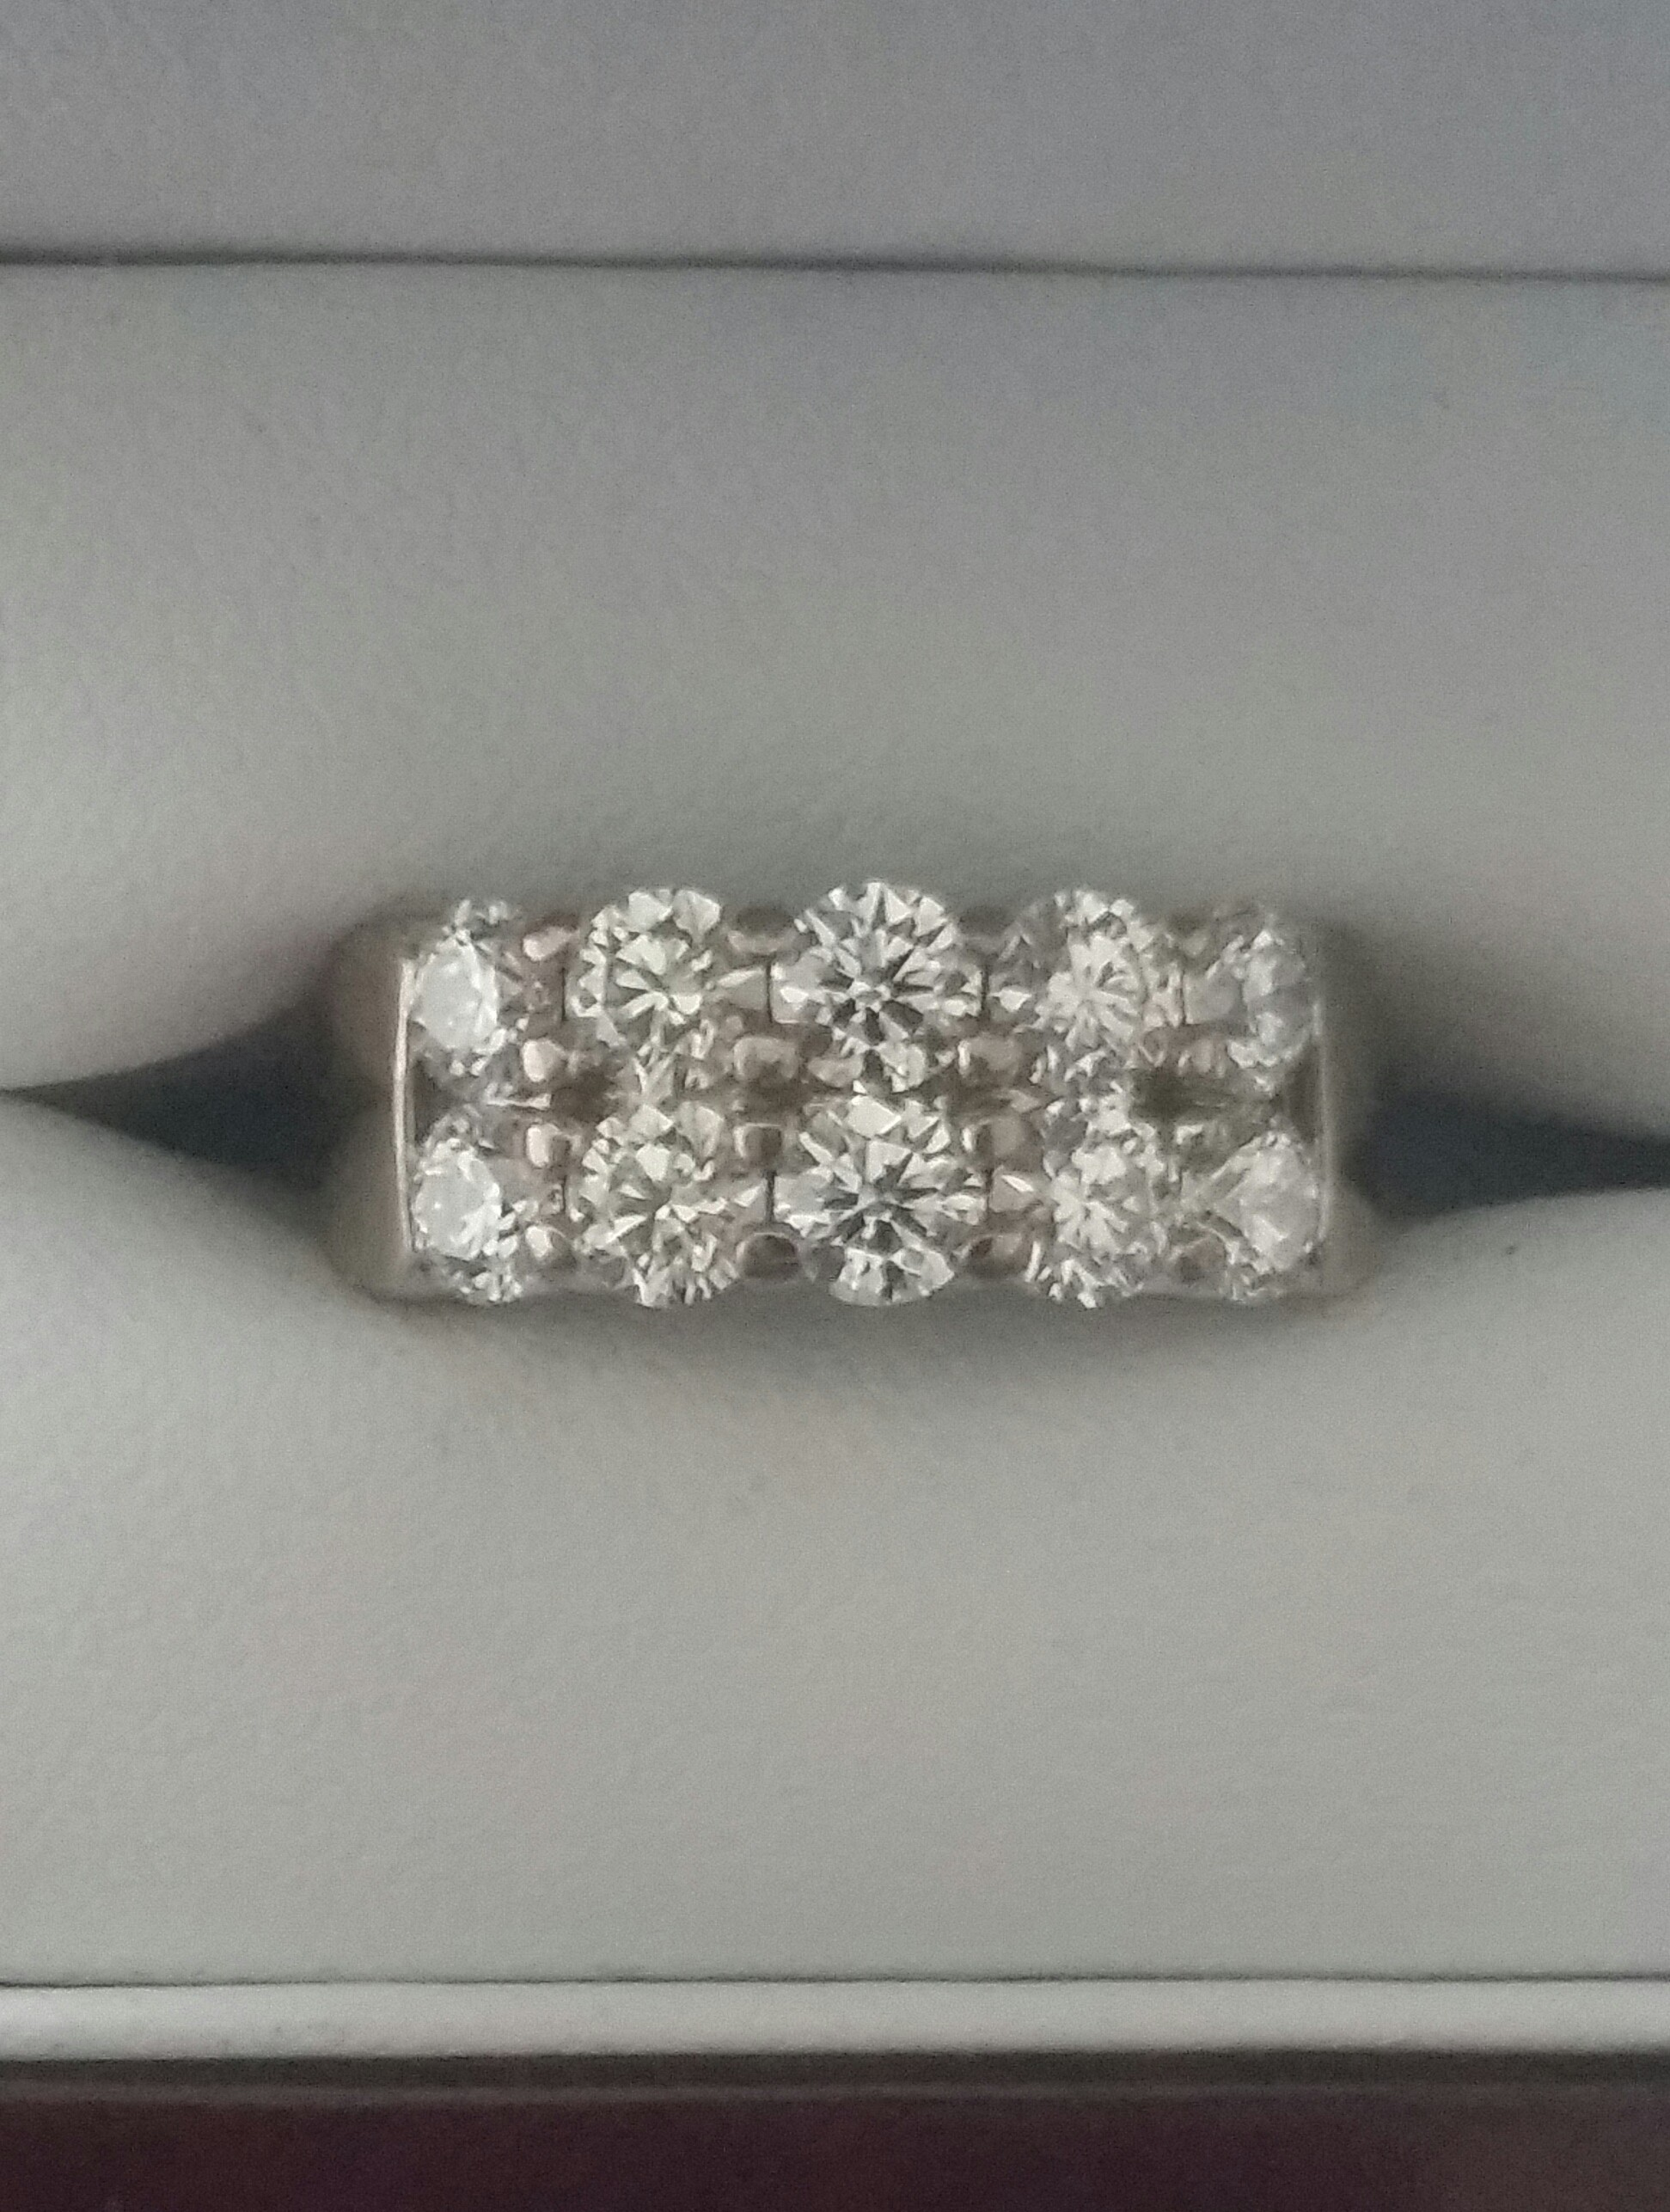 2.30 carat Hearts of Fire engagement ring, G-H, VS clarity (see below)